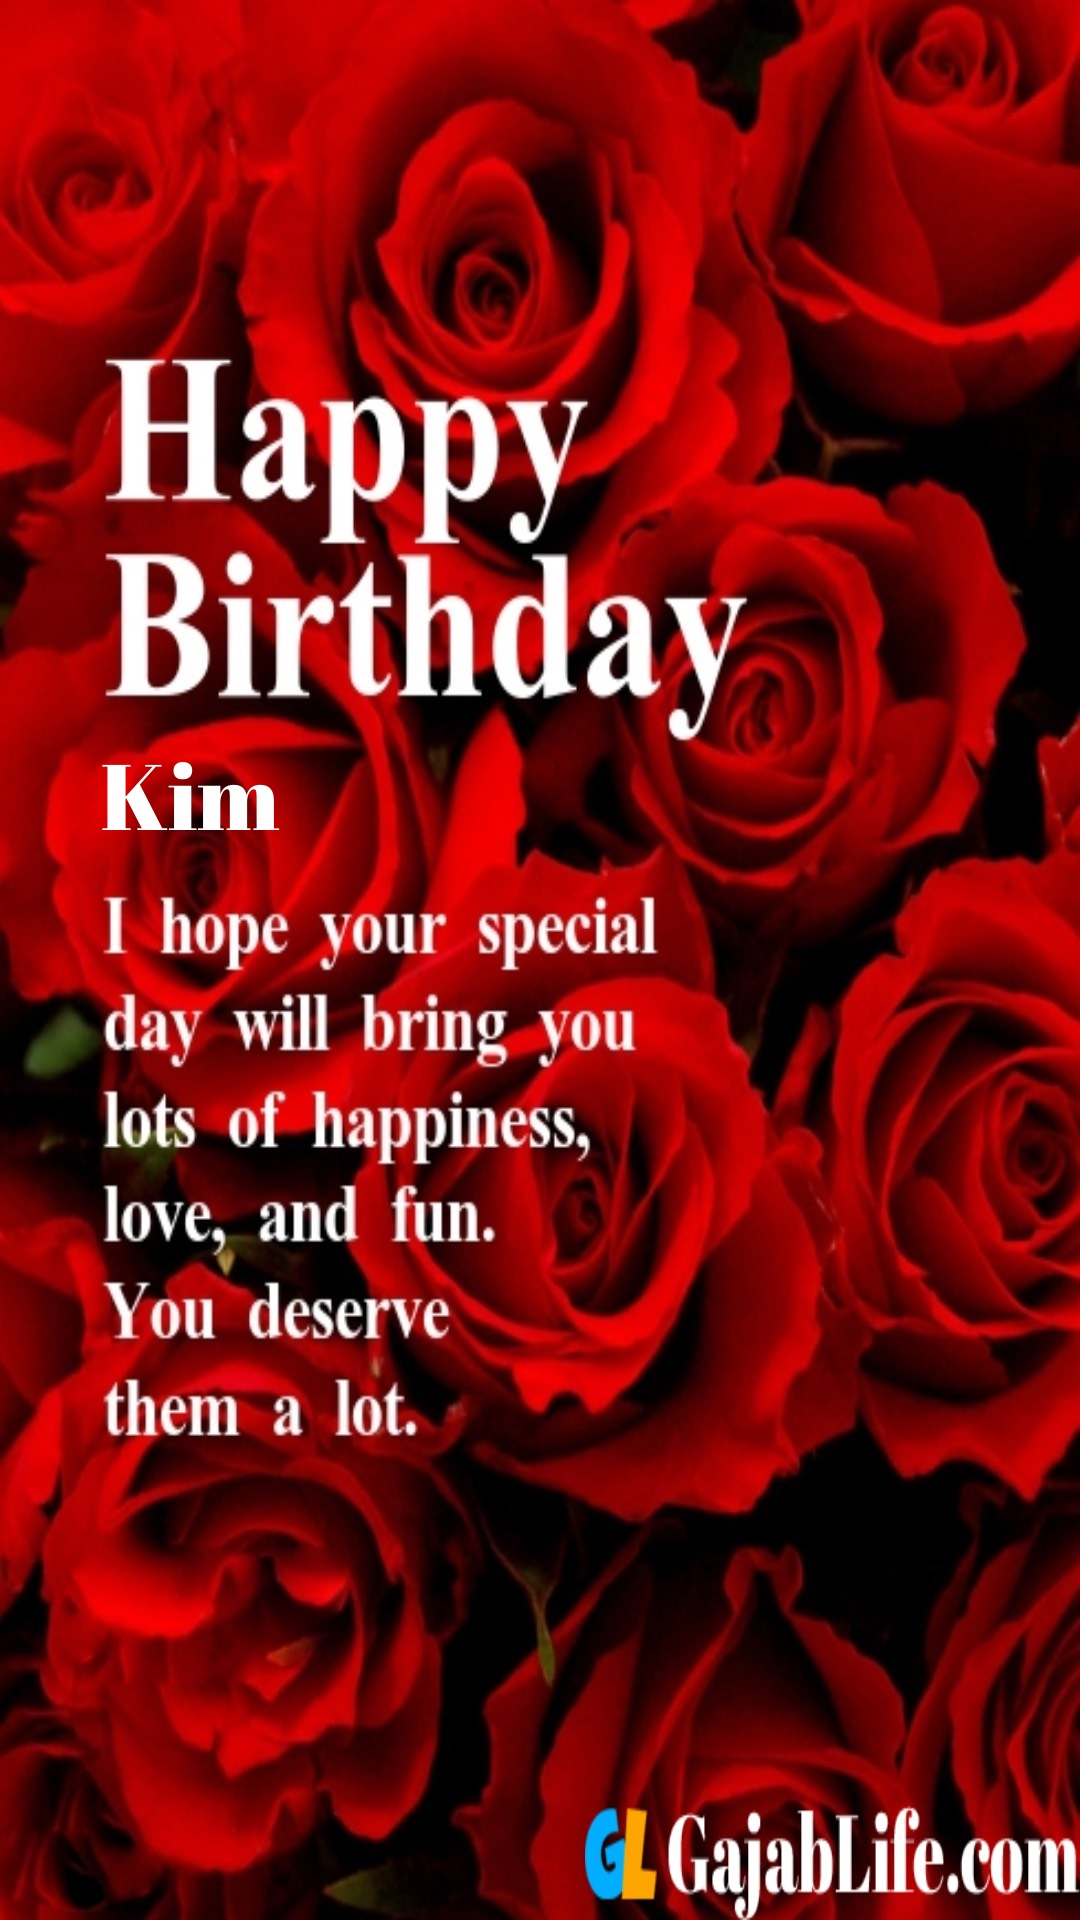 Happy Birthday Kim Images : happy, birthday, images, Romantic, Birthday, Wishes, Quotes, Images, February